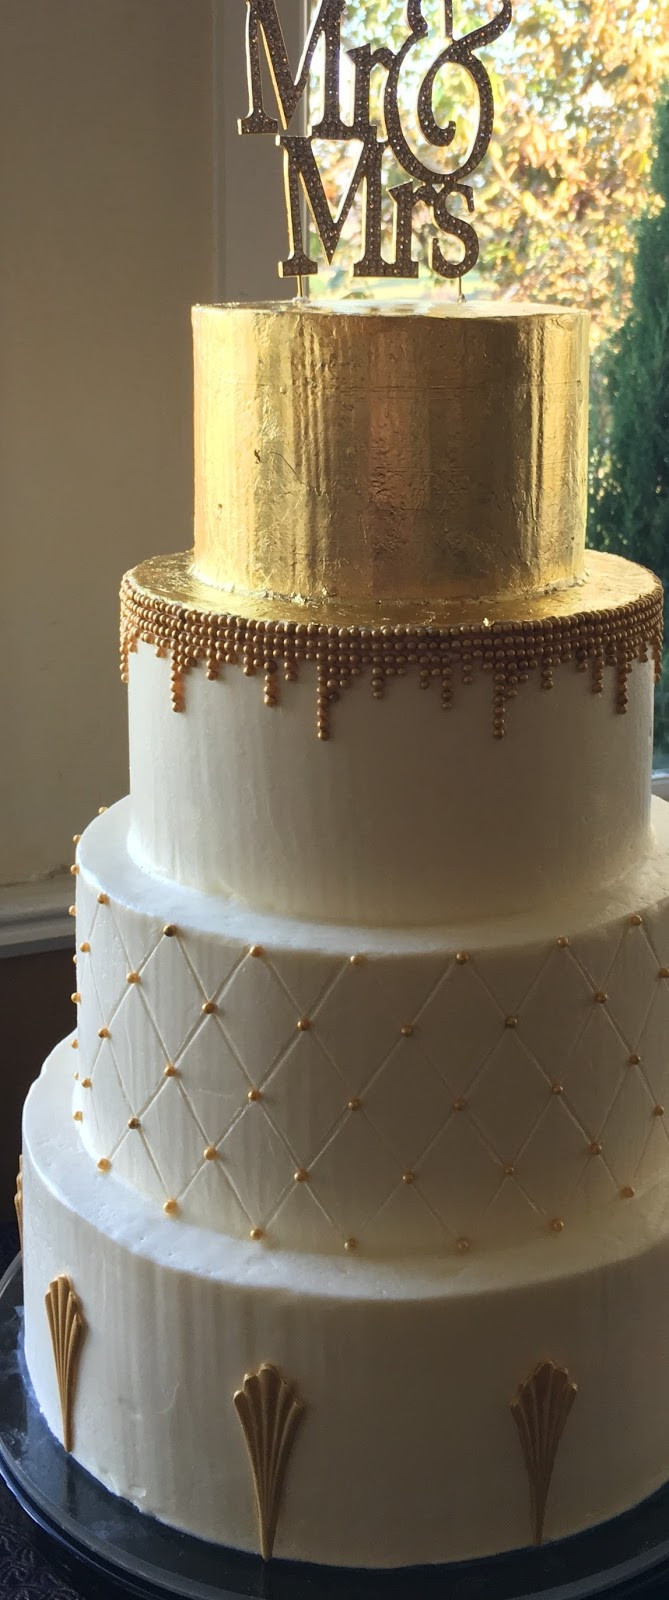 Wedding Cakes With Buttercream Frosting  Penelope s Perfections Blog How to Add Gold to